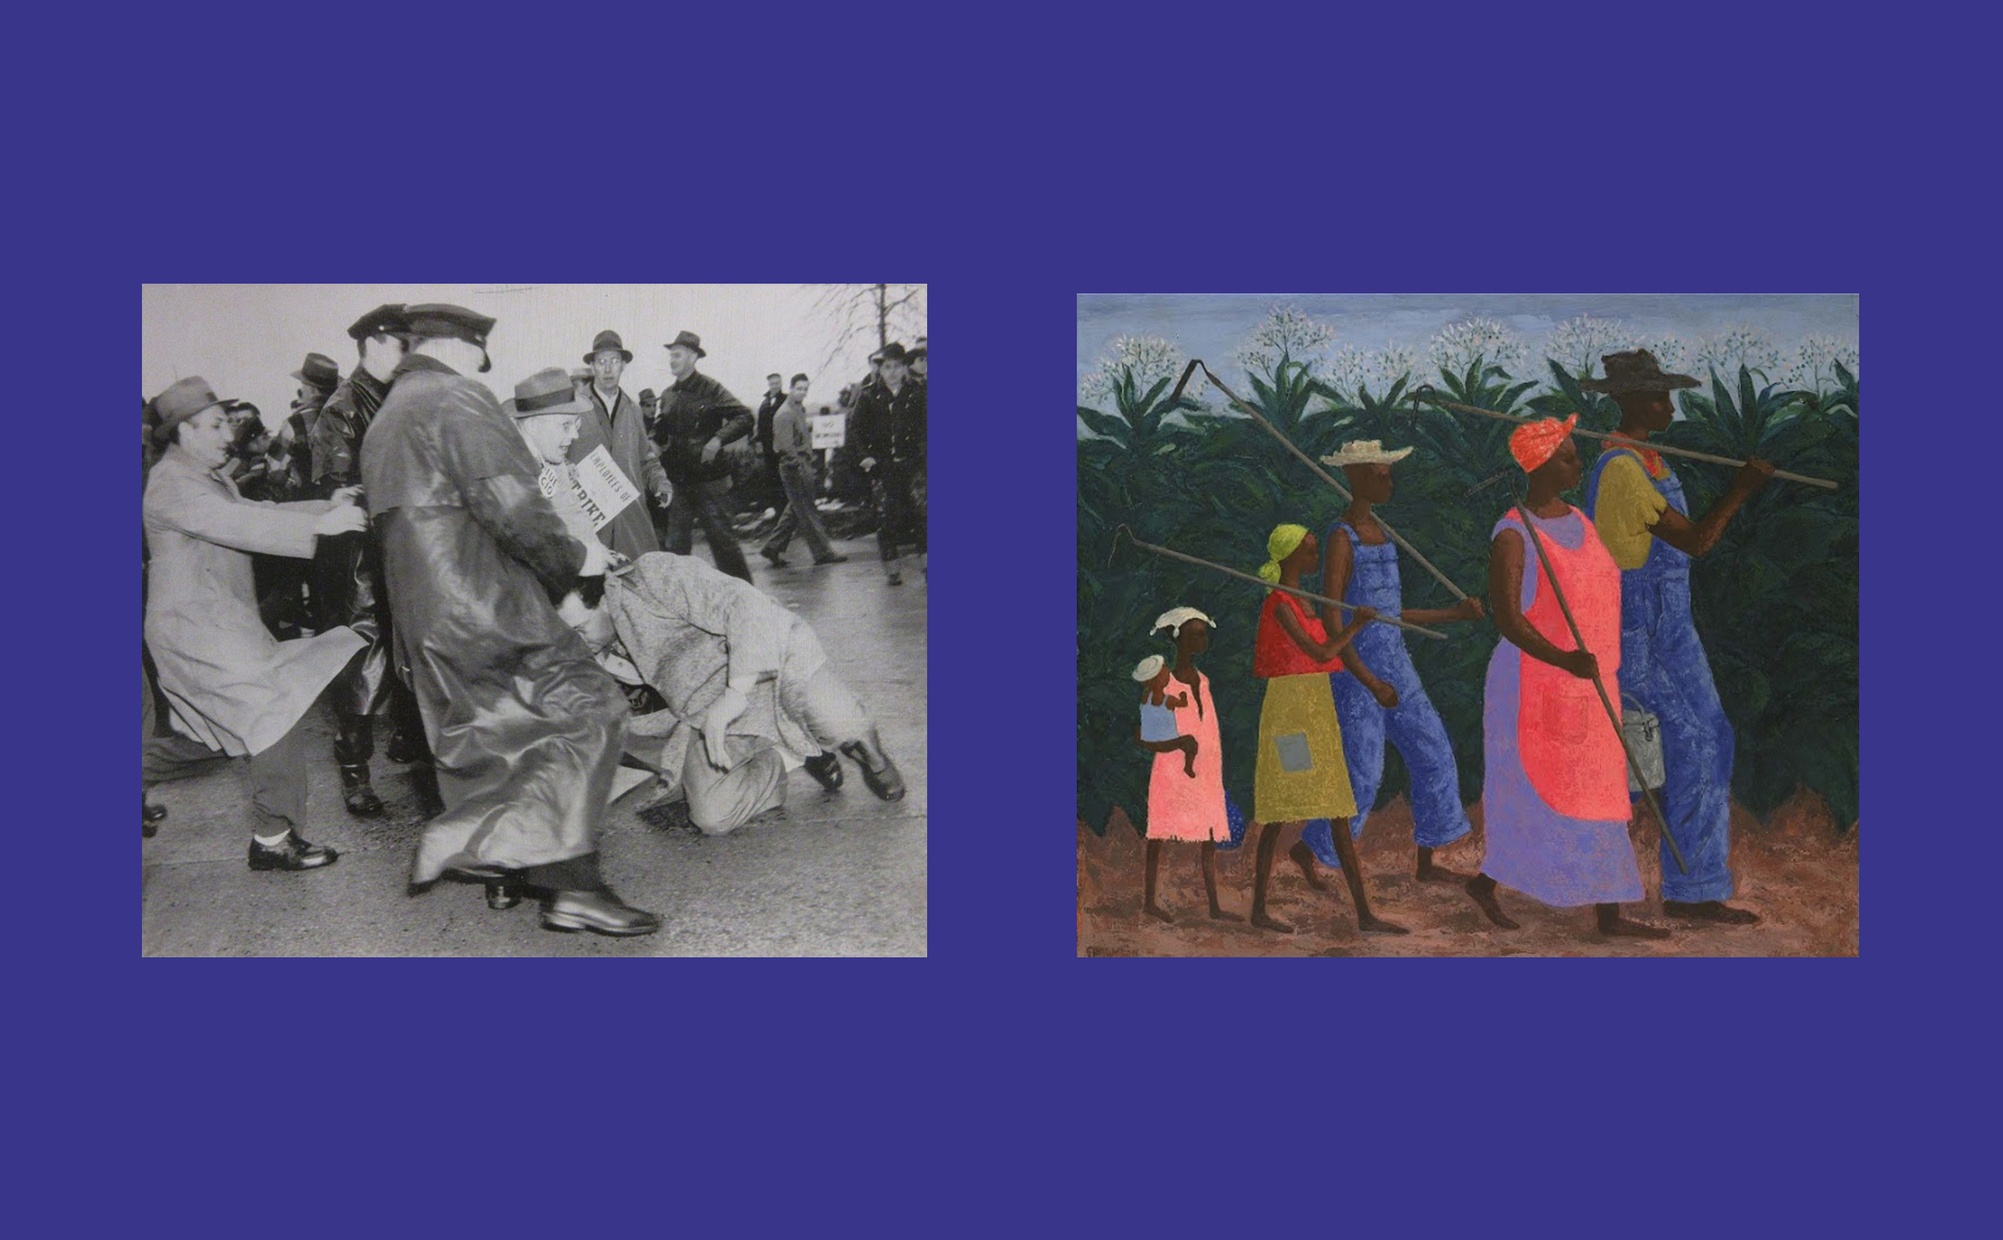 Two images side by side, one image is a black and white photograph of a confrontation between light-skinned factory workers and police and the other image is a painting of multi-generational dark-skinned people holding farm tools in a field.